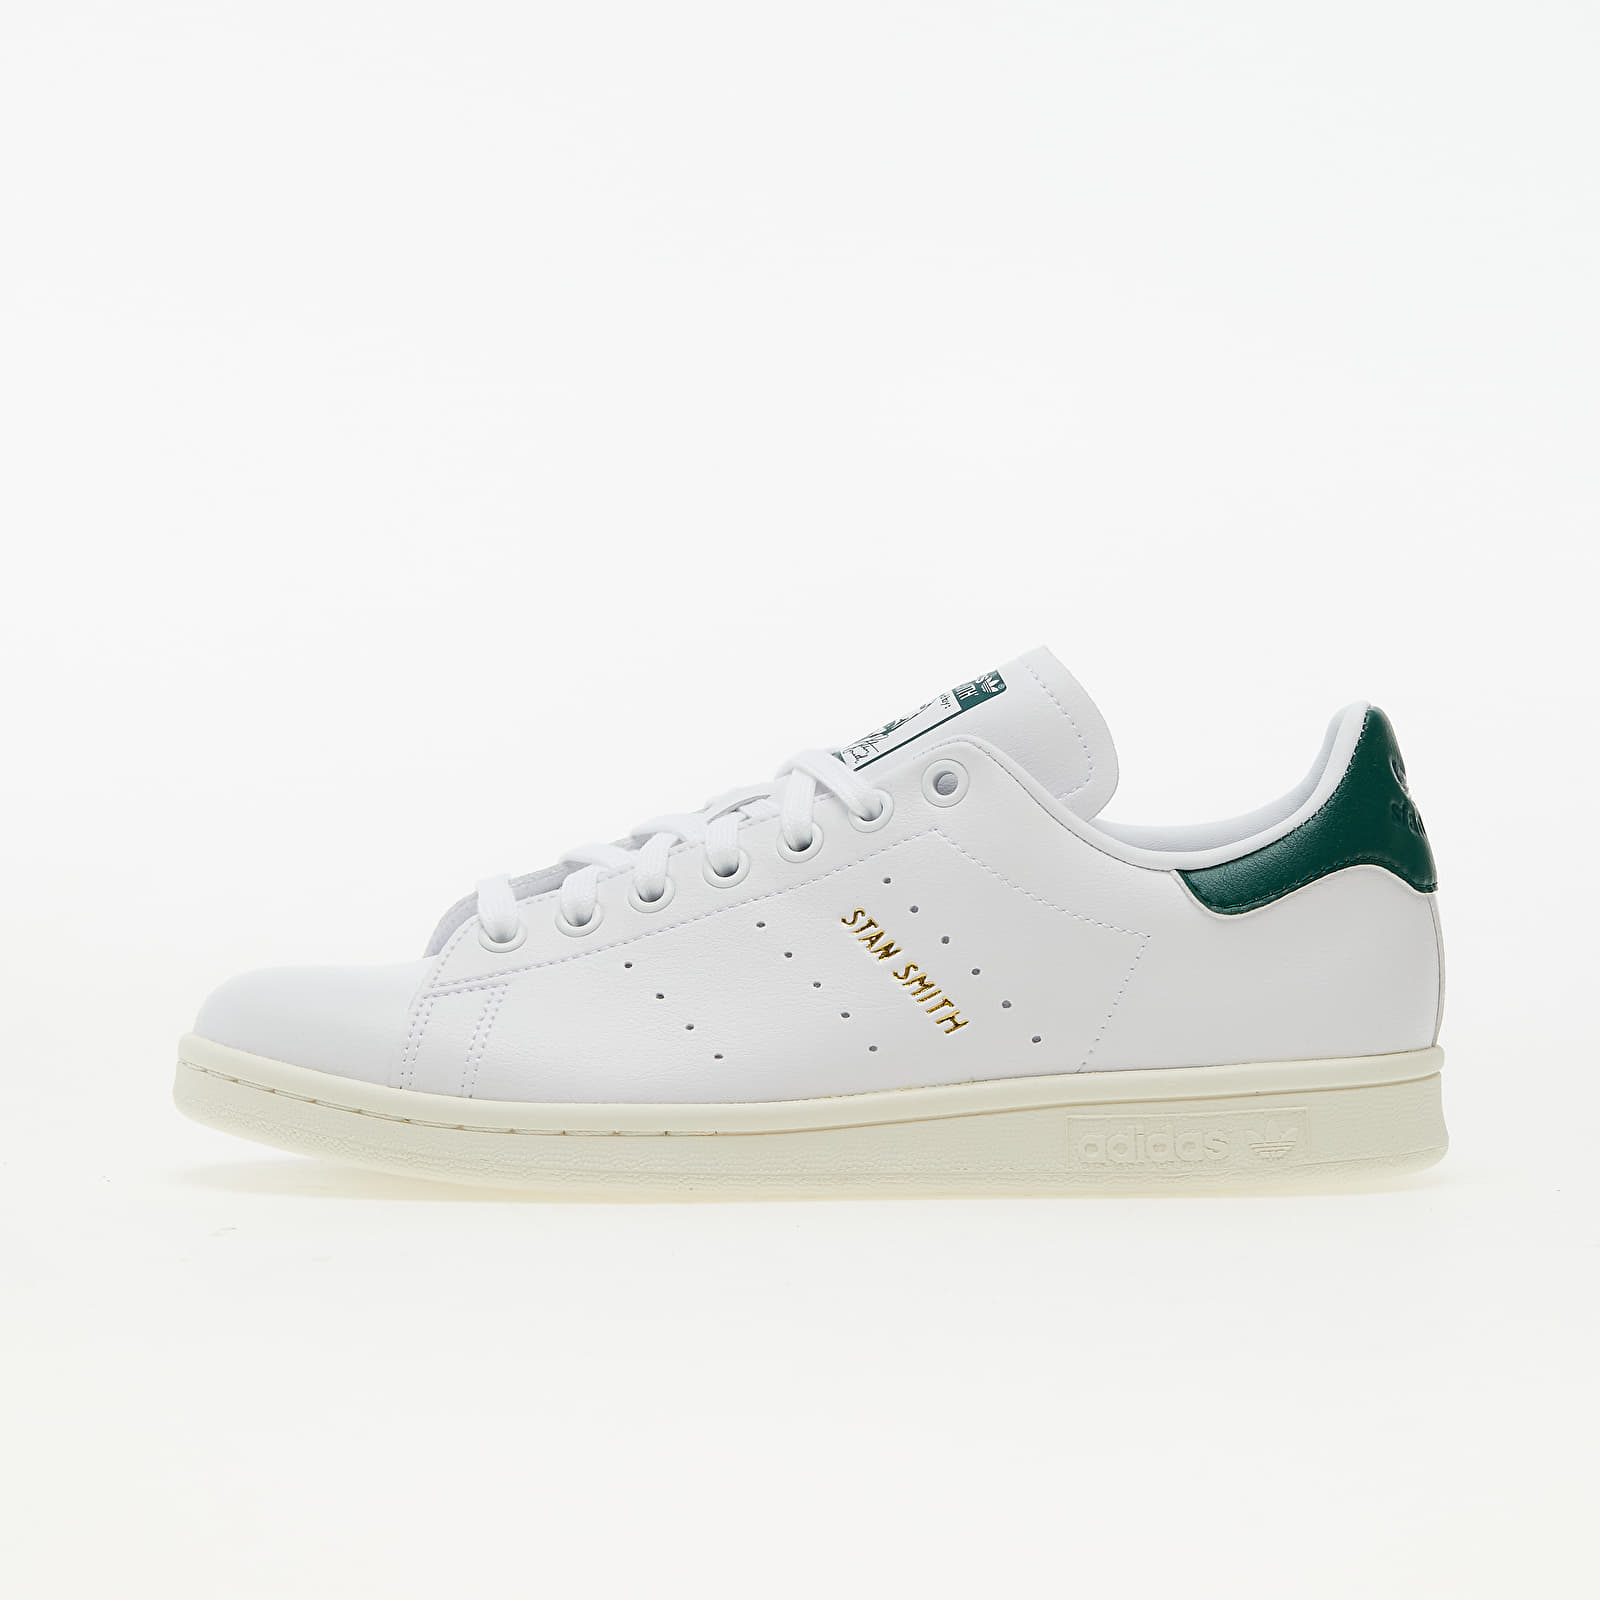 adidas Stan Smith Ftw White/ Core Green/ Off White EUR 46